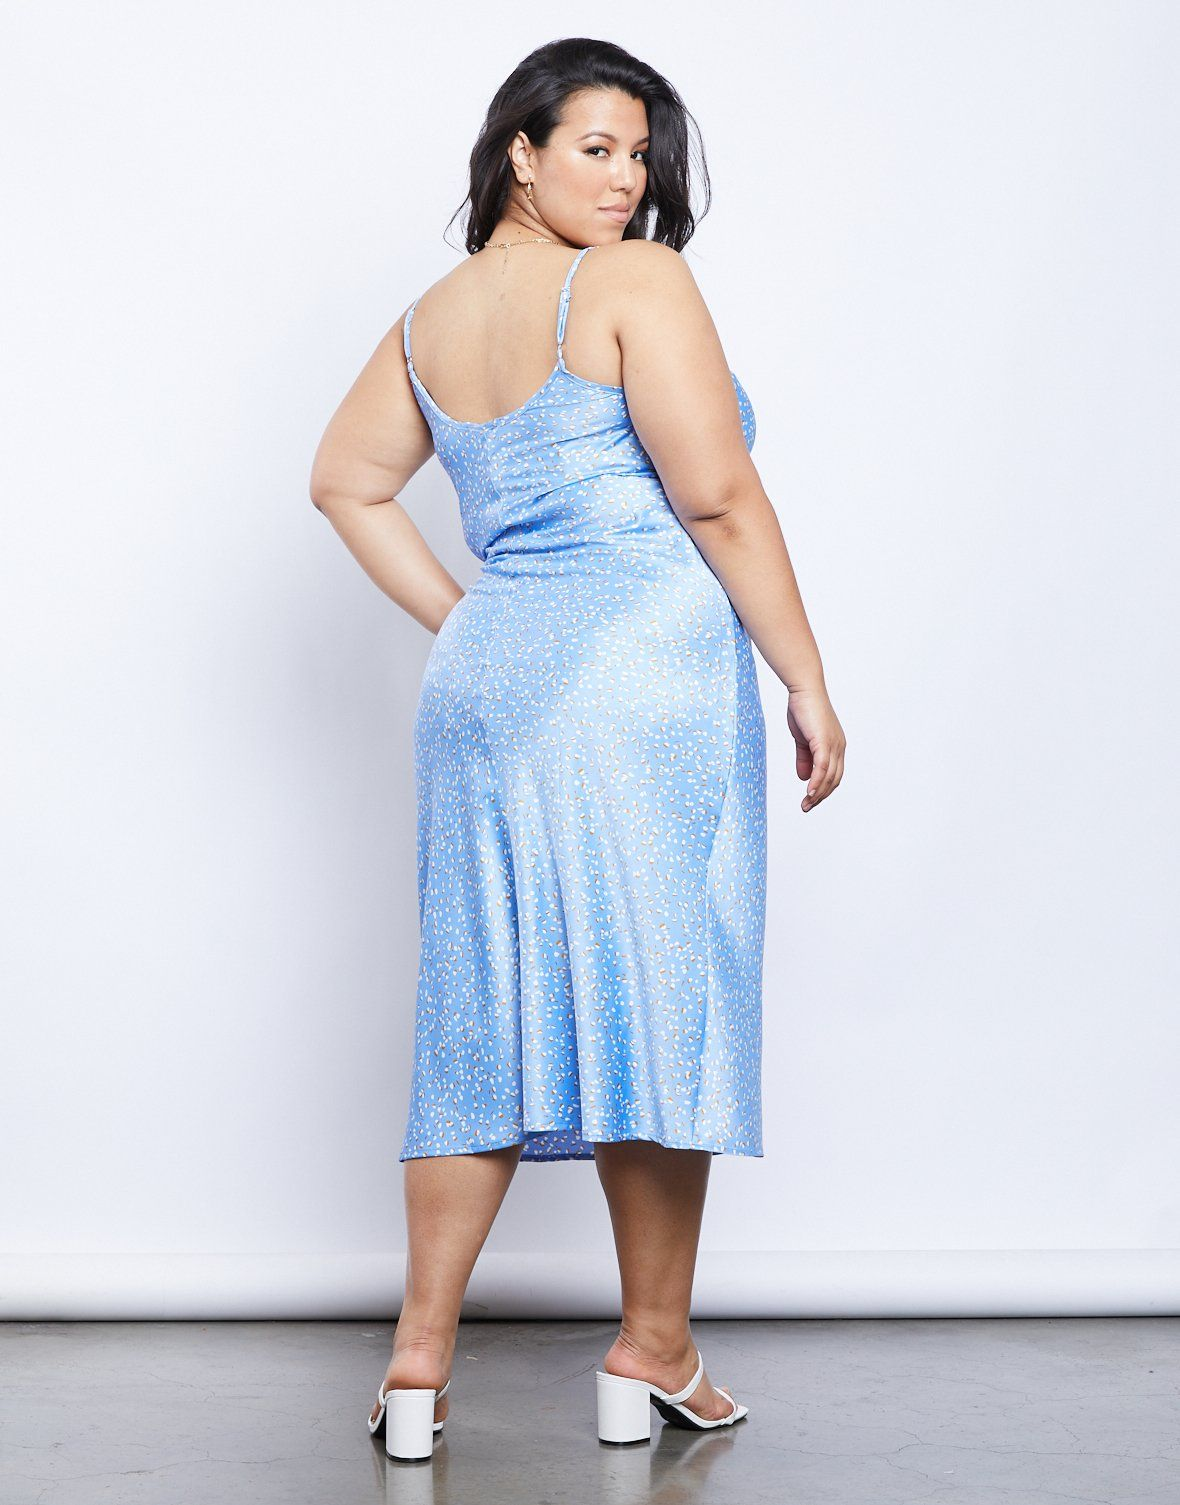 Plus Size Alexcina Slip Dress In 2020 Dresses Slip Dress Stunning Dresses